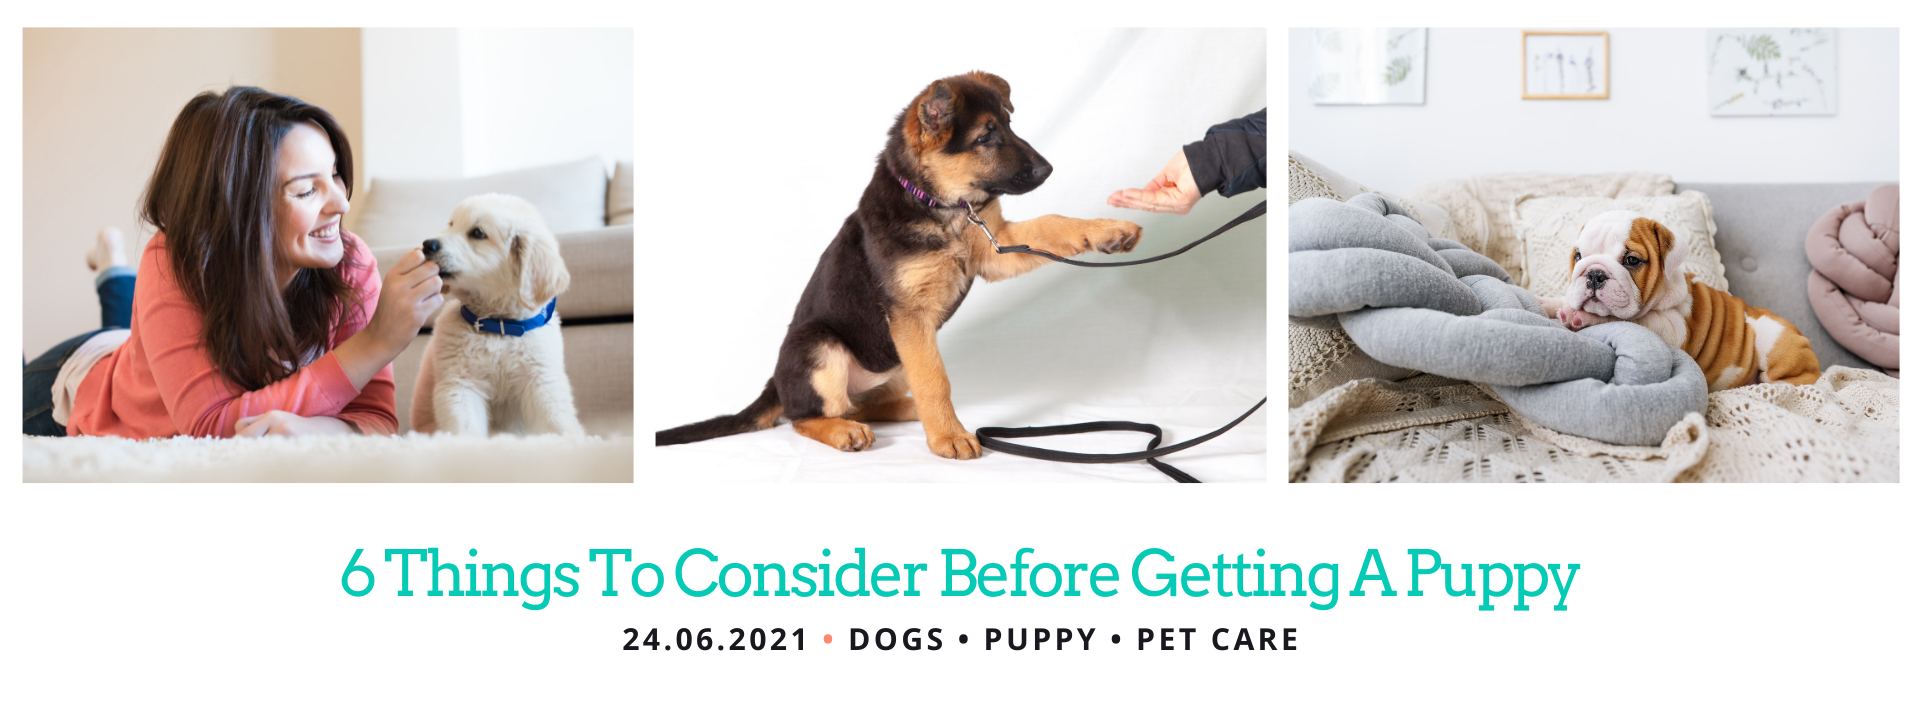 What to Consider When Getting a Puppy